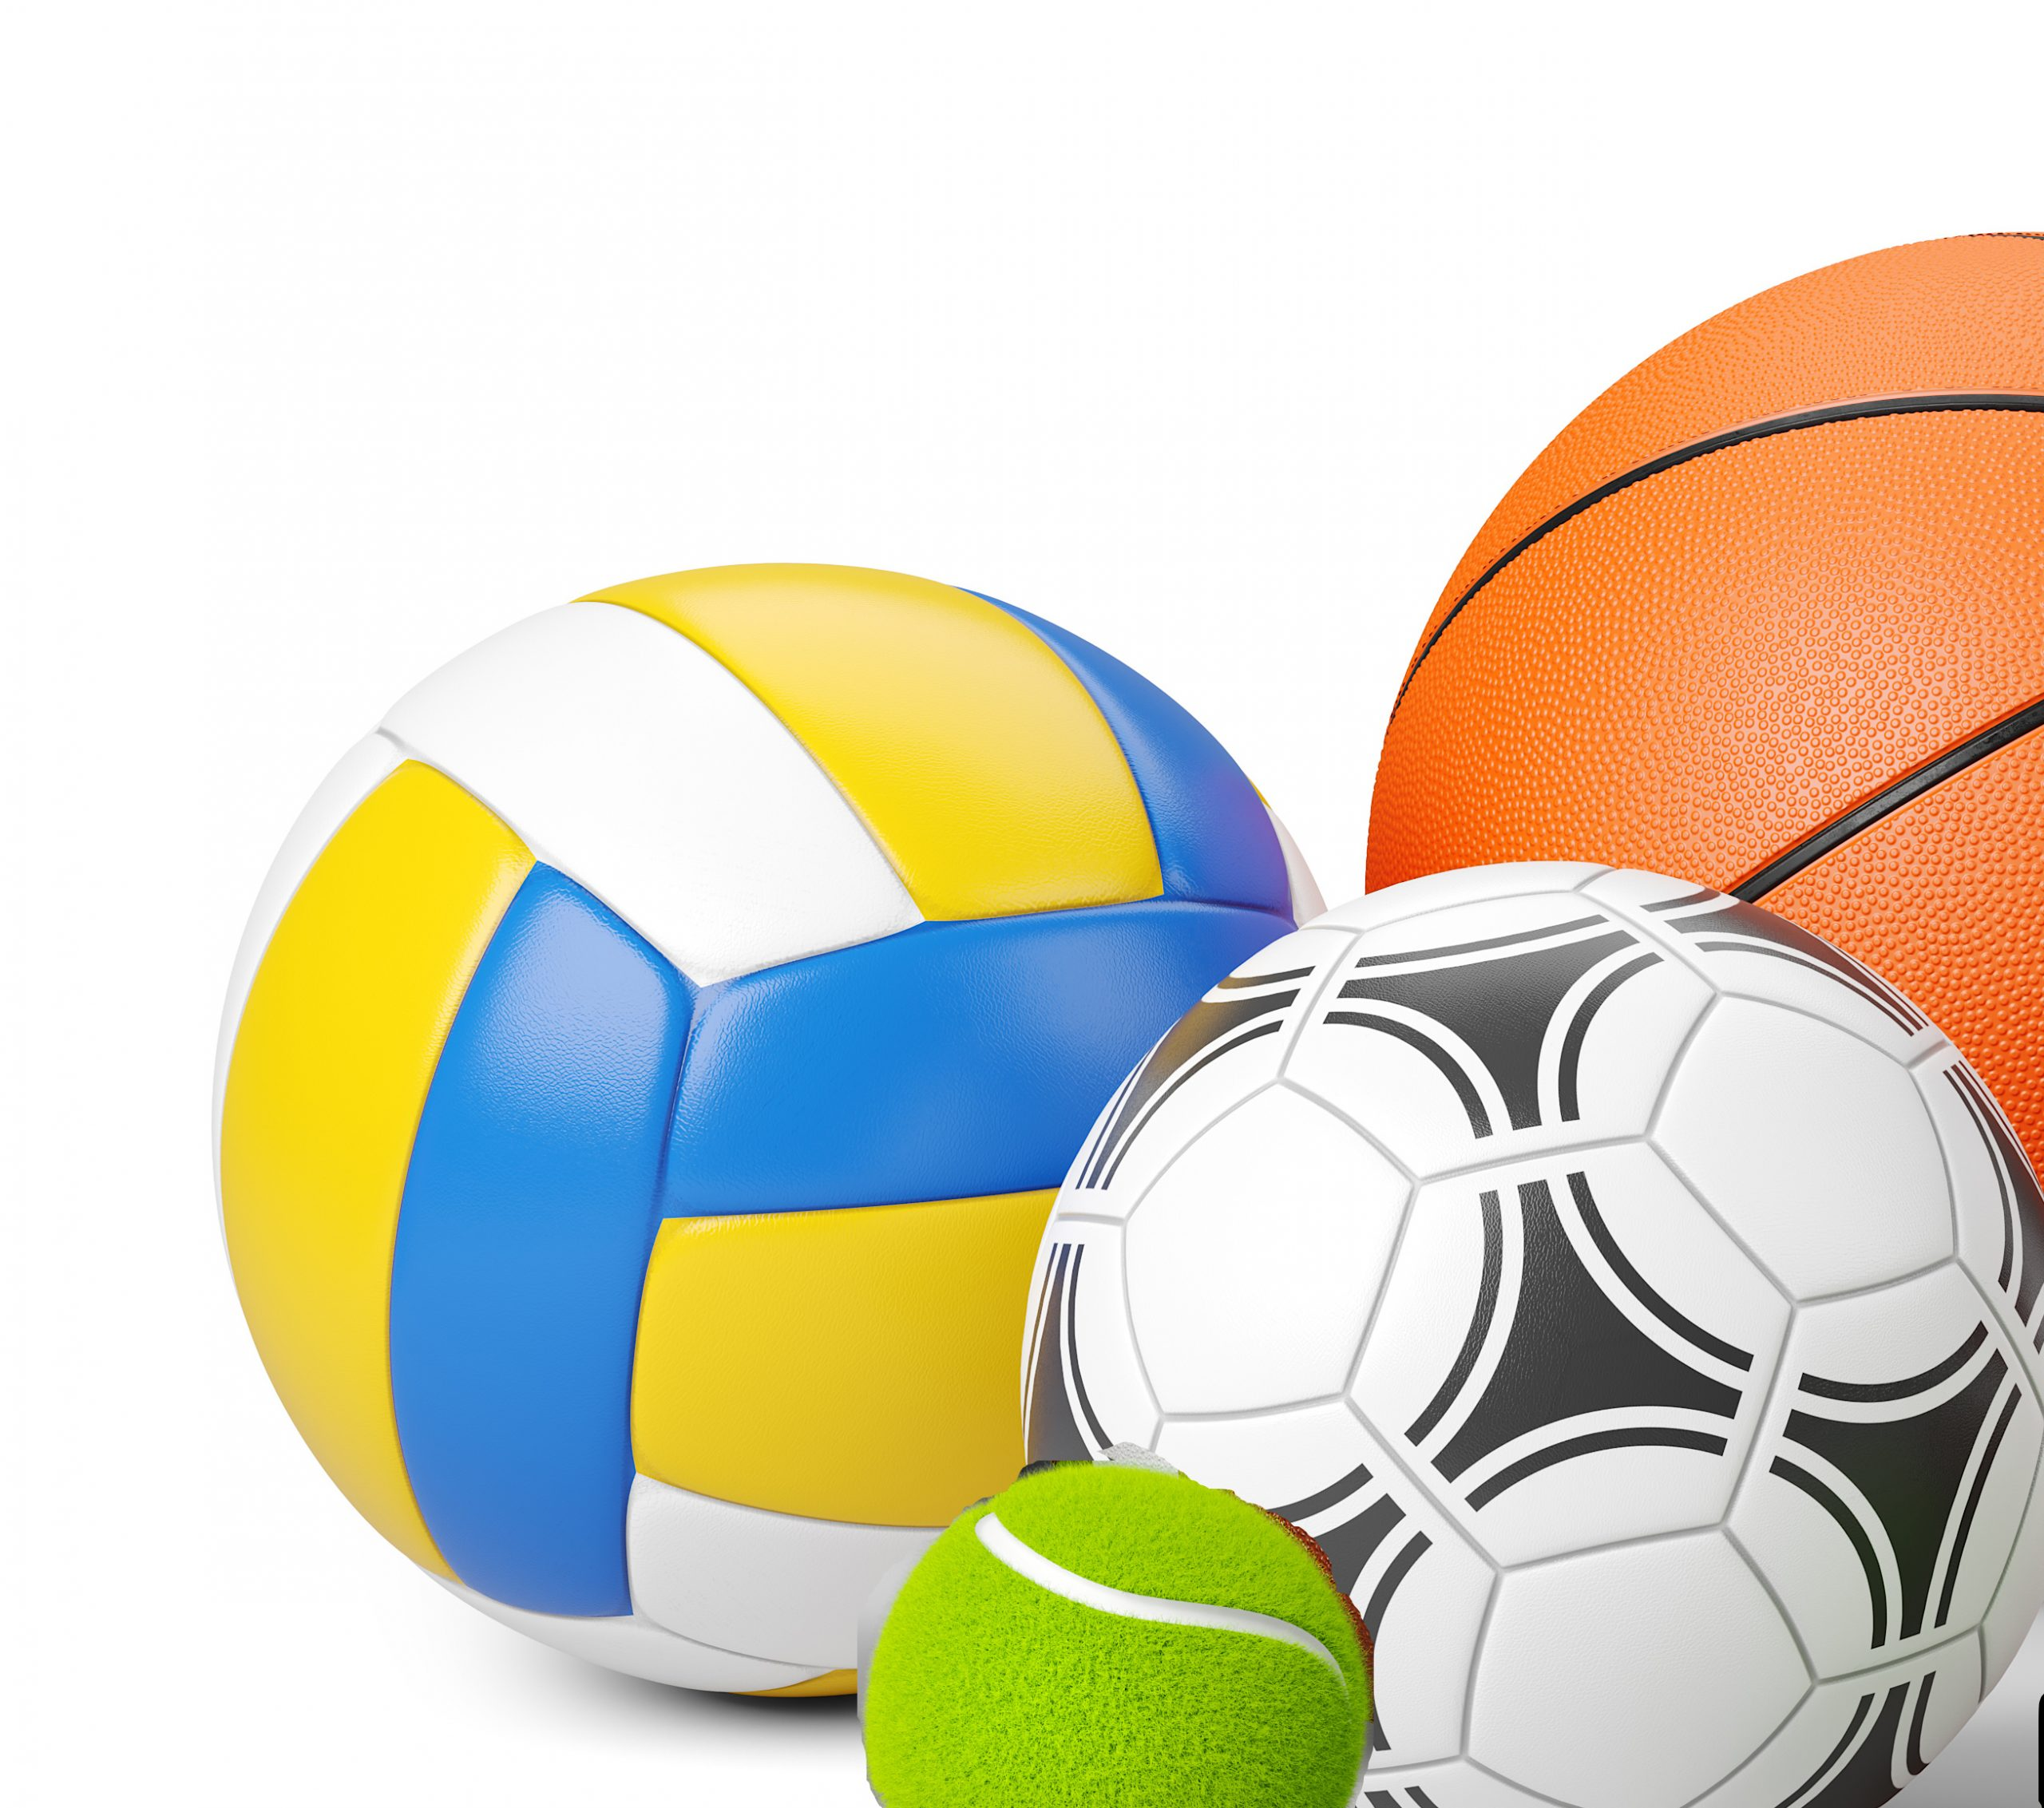 Sports shop logo. Group of balls the team games isolated on whit